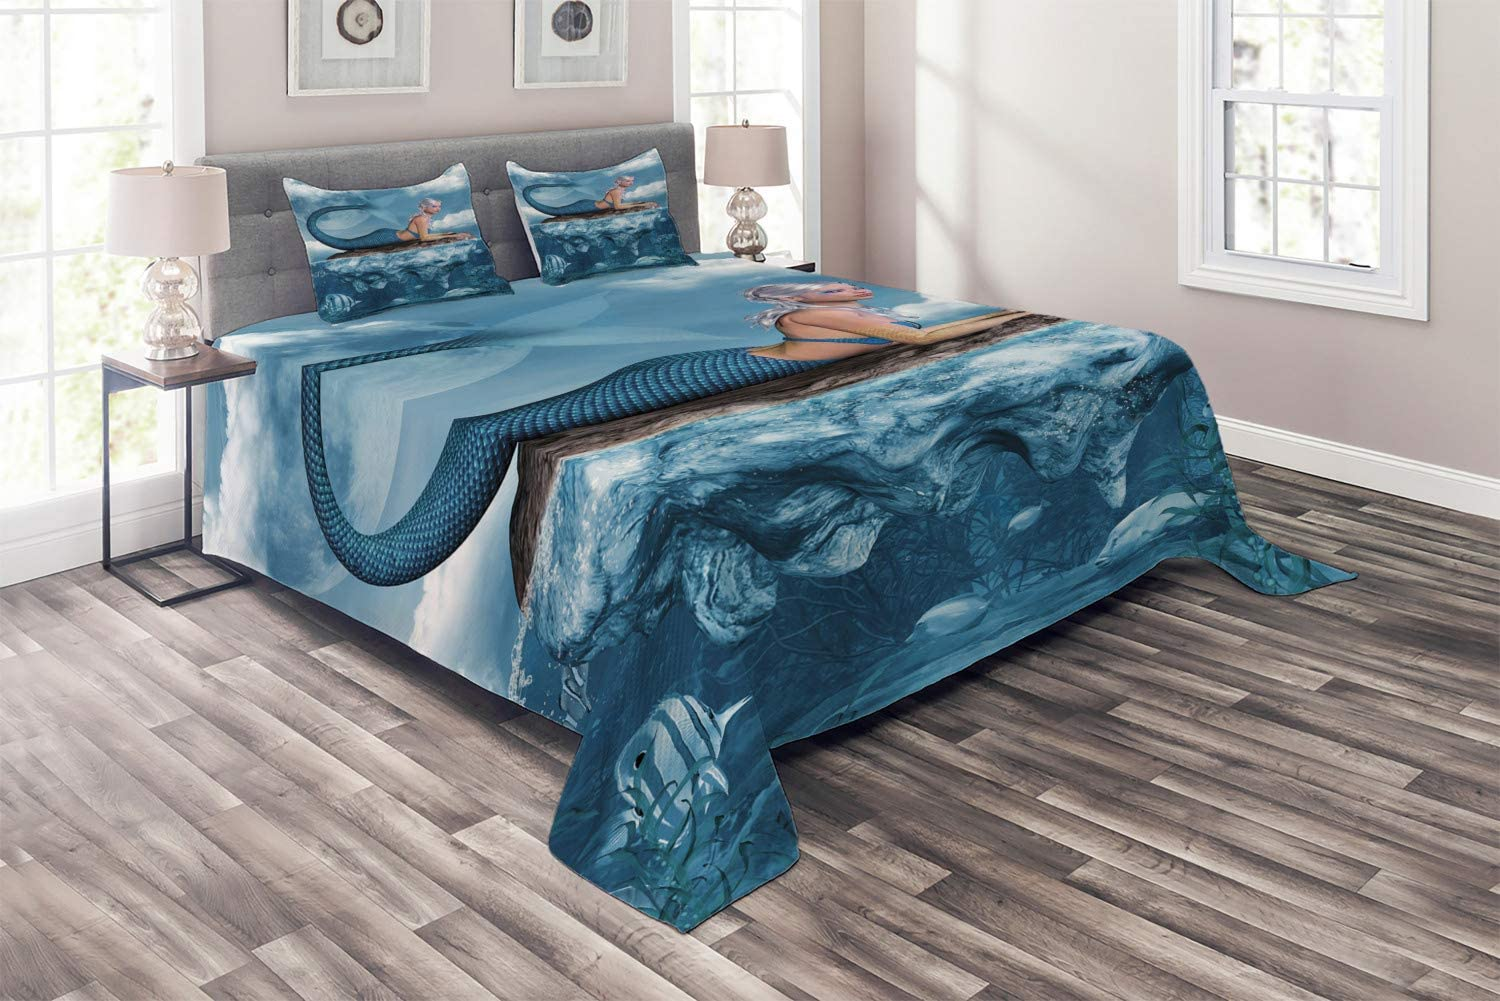 Ambesonne Mermaid Coverlet Graphic Max 90% OFF Courier shipping free shipping Art Print a of Girl